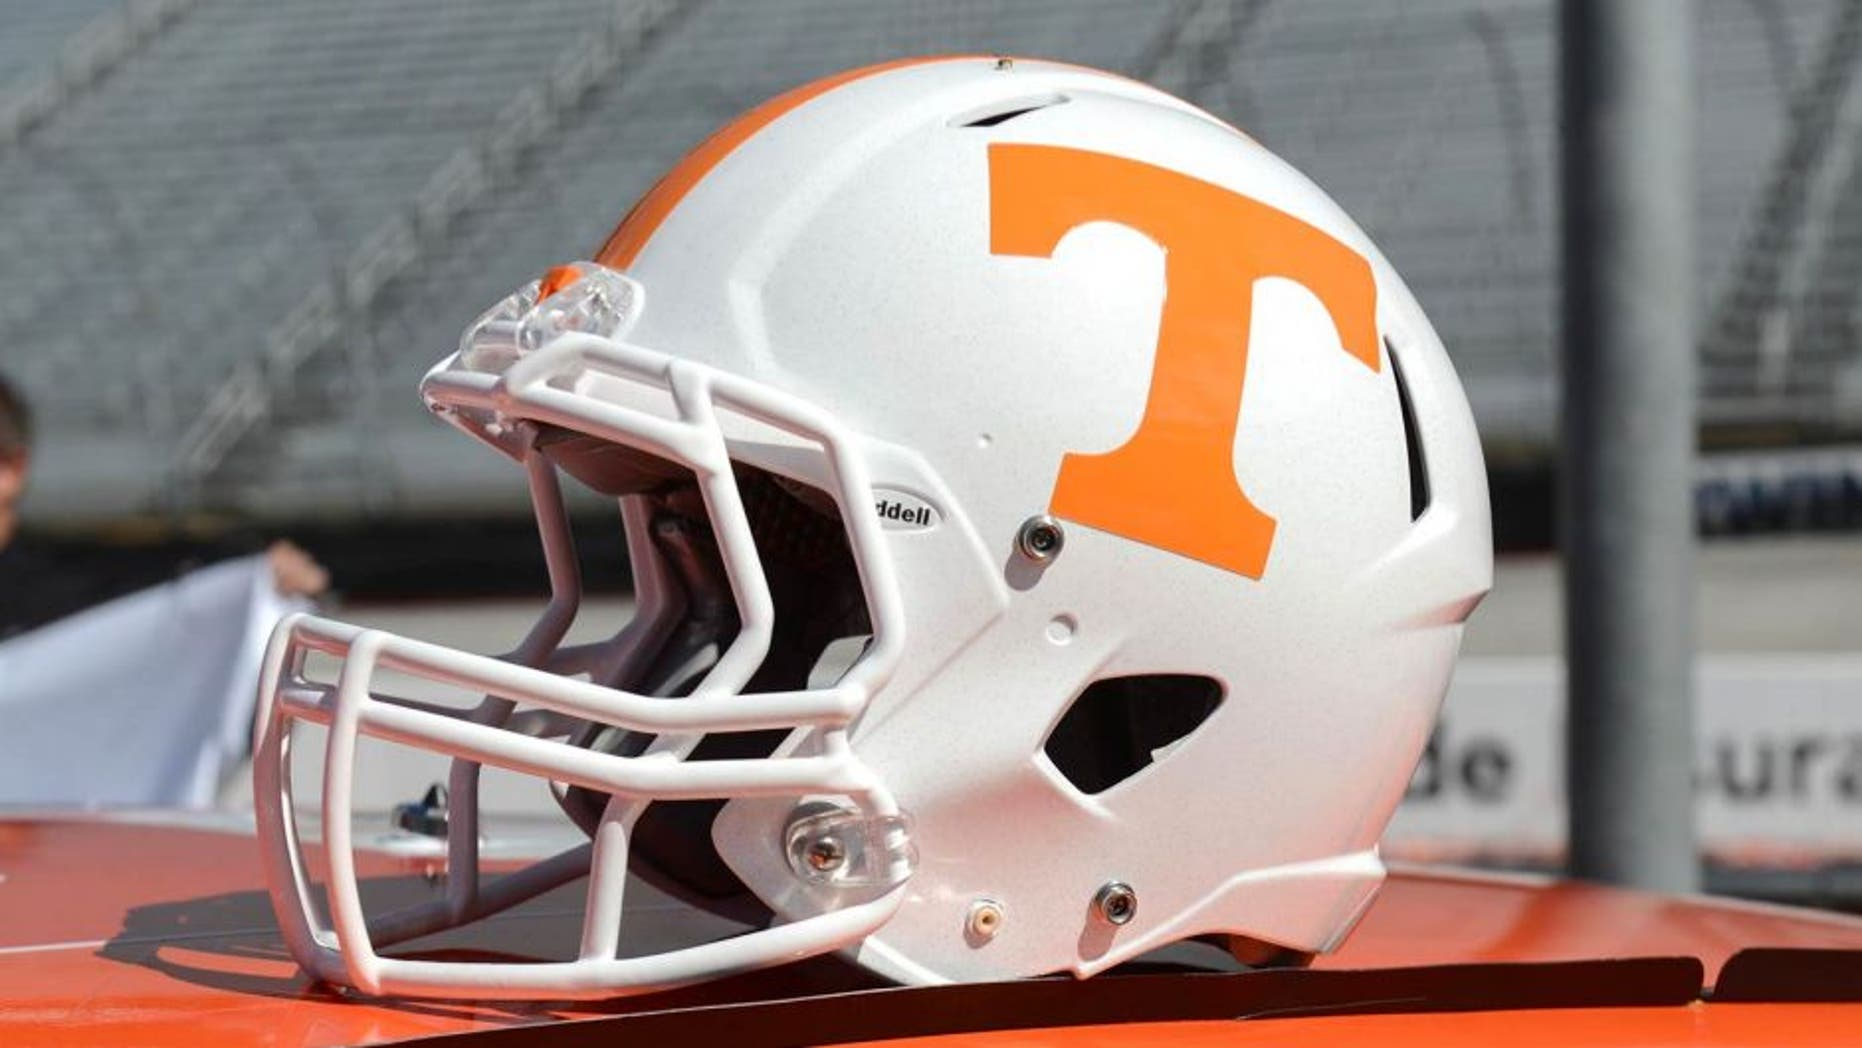 Oct 14, 2013; Knoxville, TN, USA; A helmet on display after the announcement that the Tennessee Volunteers and Virginia Tech Hokies will play a football game on Sep. 10, 2016 at Bristol Motor Speedway. Mandatory Credit: Randy Sartin-USA TODAY Sports